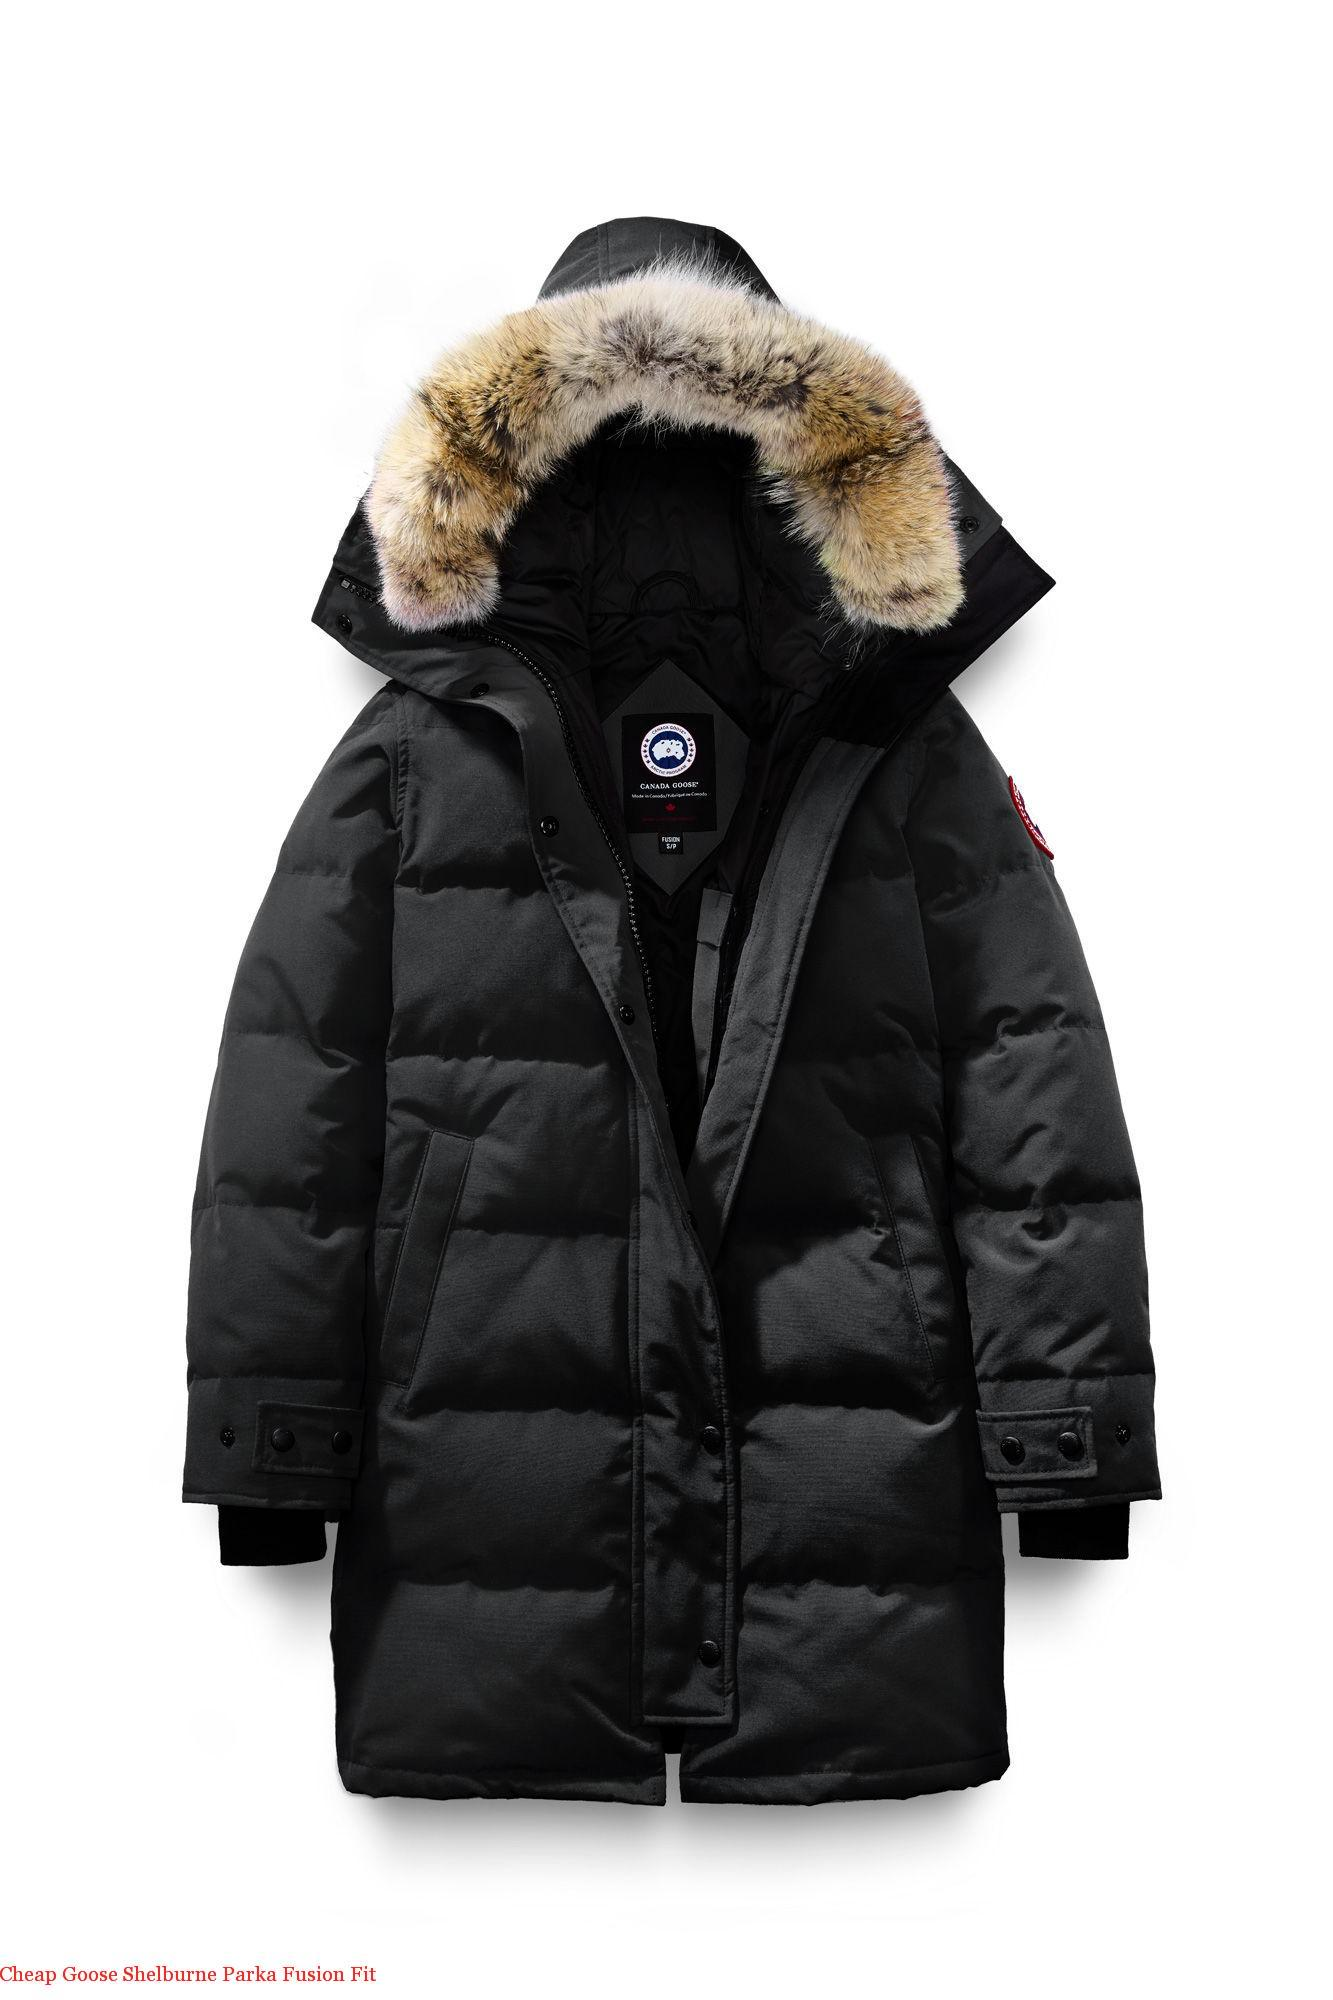 Cheap Canada Goose Outlet: Sale Jacket, Parka, Coats etc at